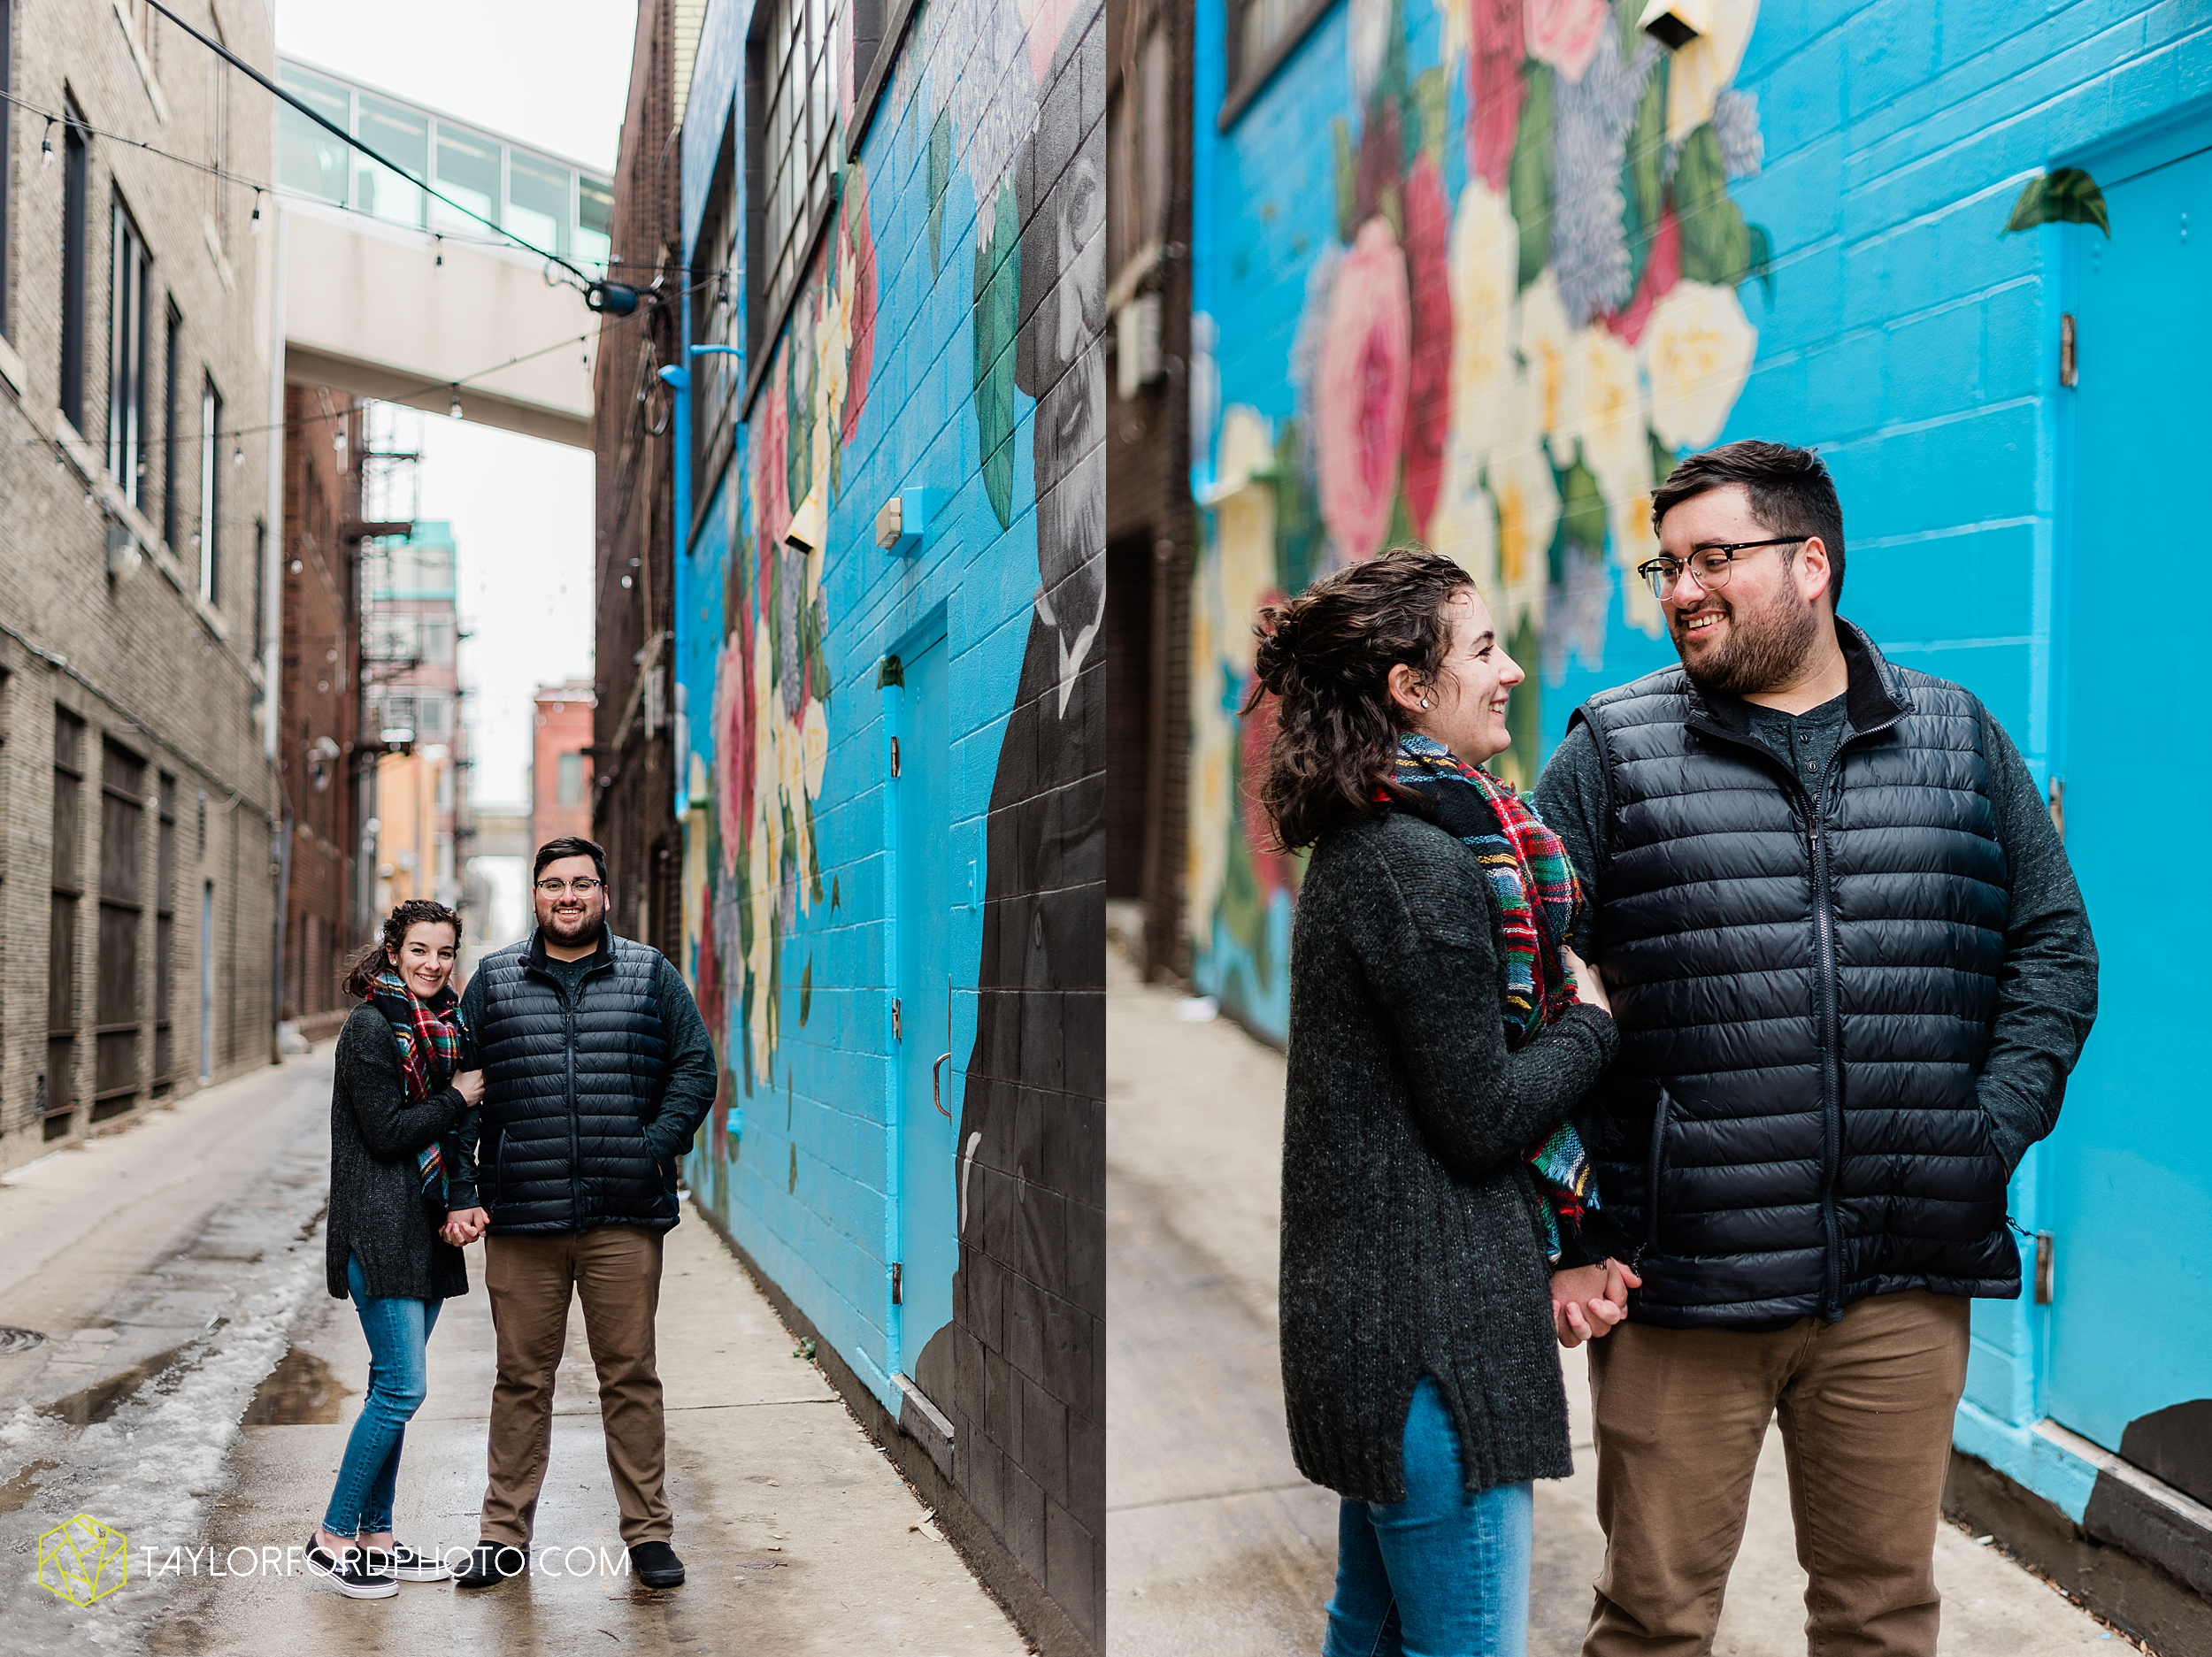 brenna-jose-fort-wayne-indiana-engagement-family-child-downtown-river-greenway-photography-taylor-ford-hirschy-photographer_2306.jpg